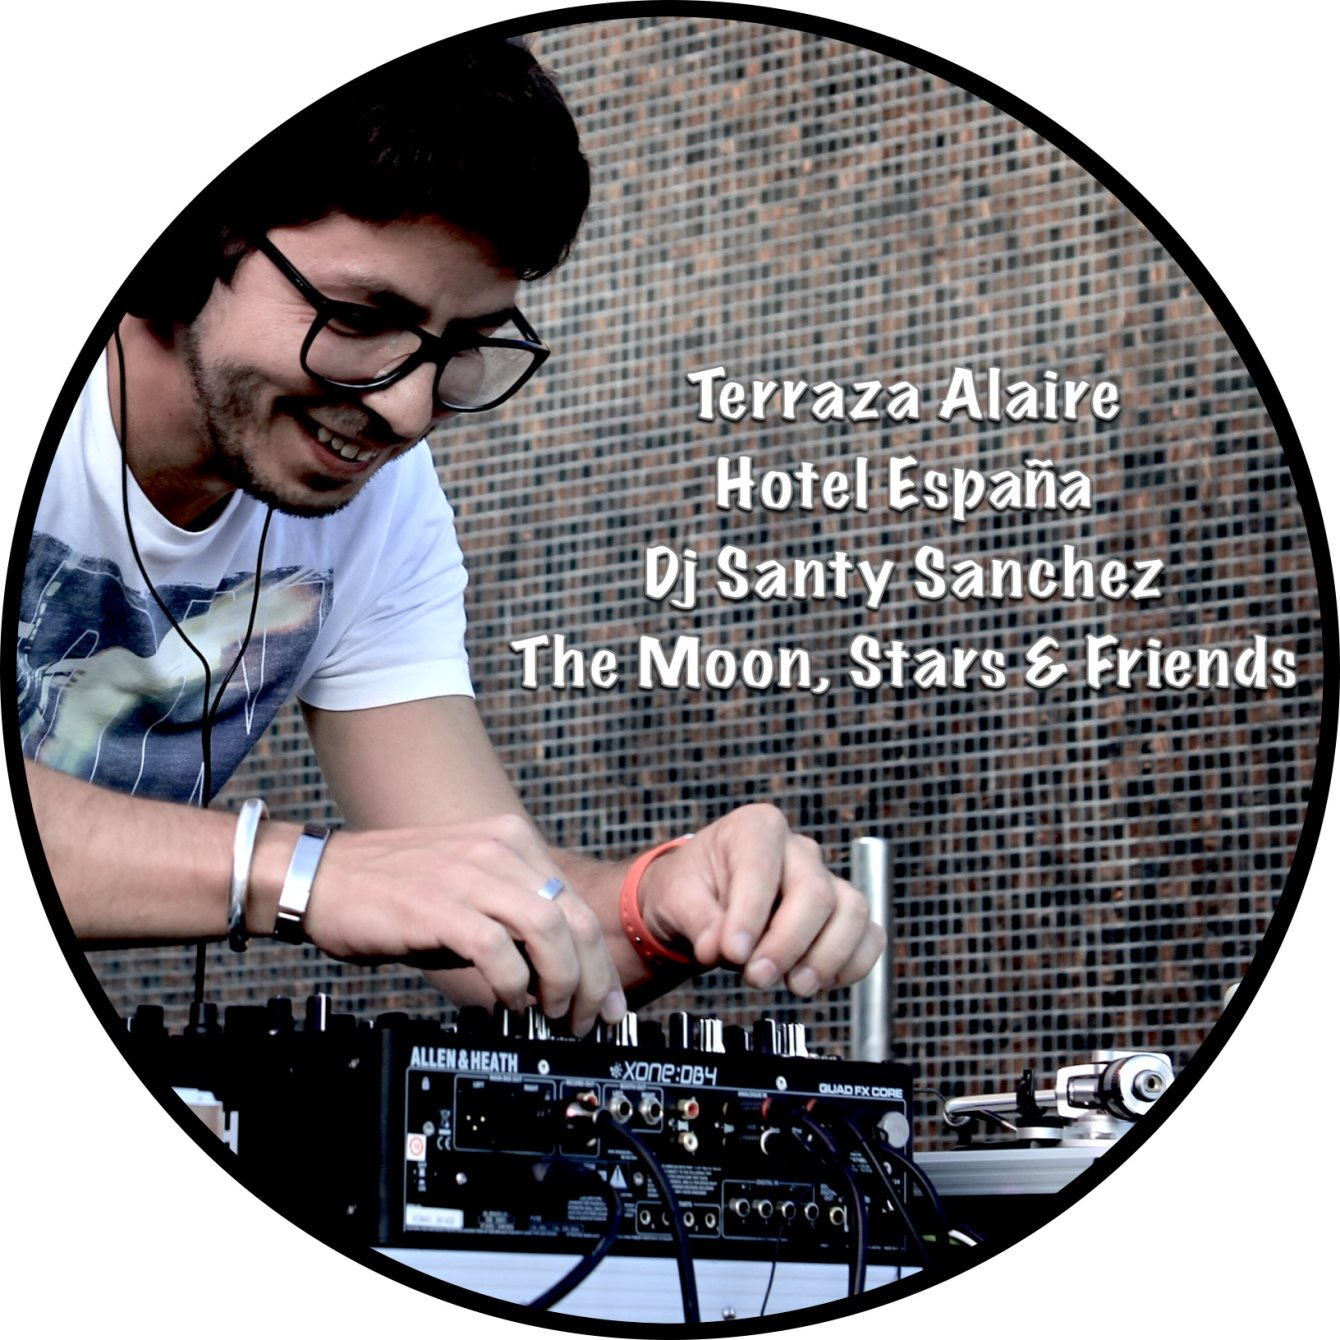 Ra The Moon Stars Friends On Rooftop Sessions At Terraza